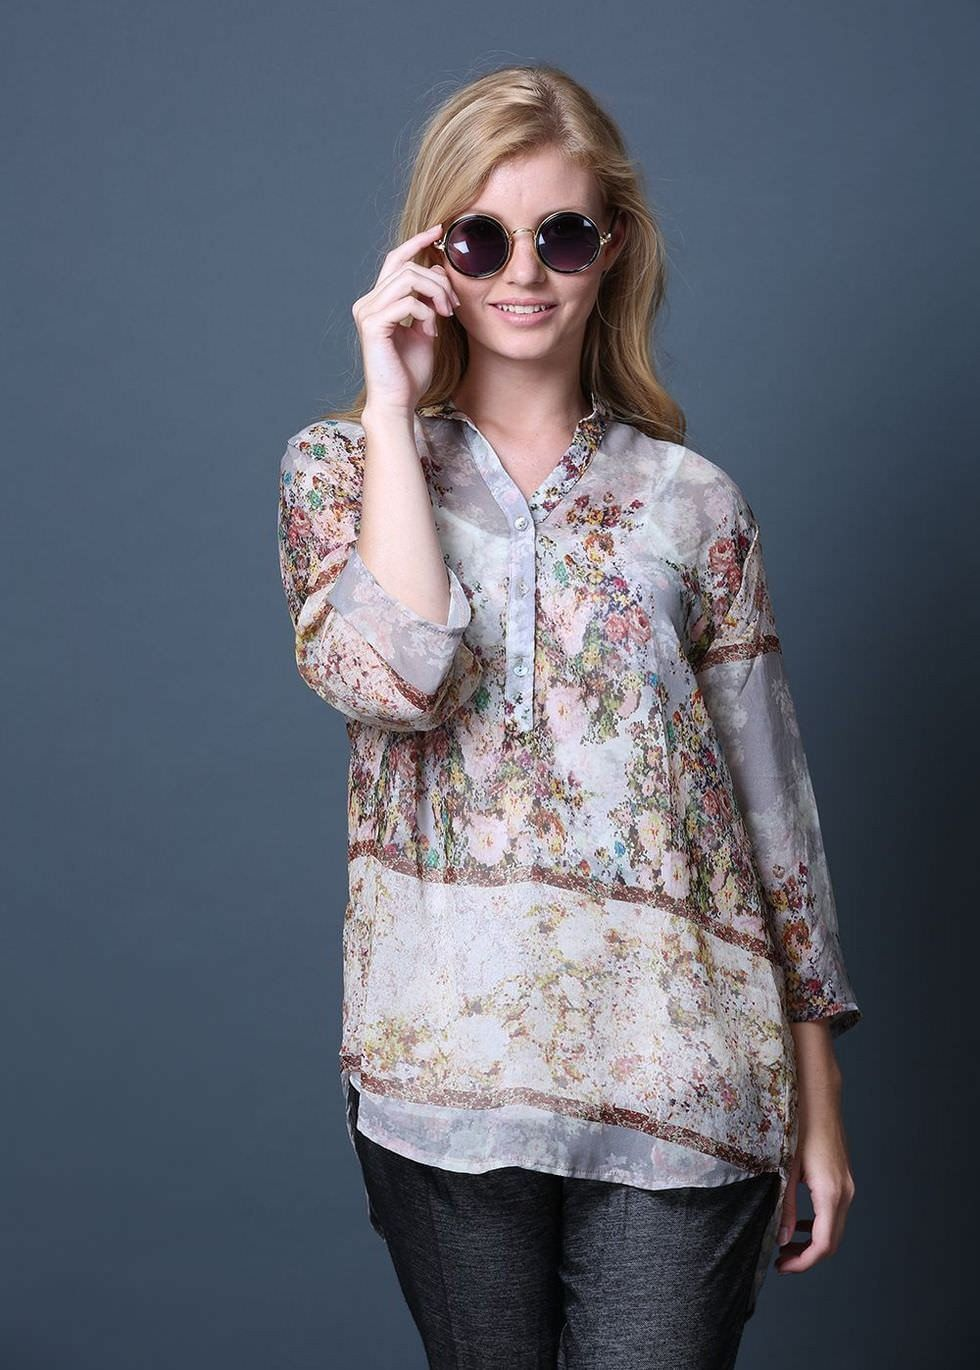 Yaara chiffon shirt in a brown-blue-yellow floral print. The Yaara shirt features a chinese collar, 3 buttons down the front, and a gentle pleat at the back. The back of this shirt is longer than the front, for a classy, flattering, and comfortable look